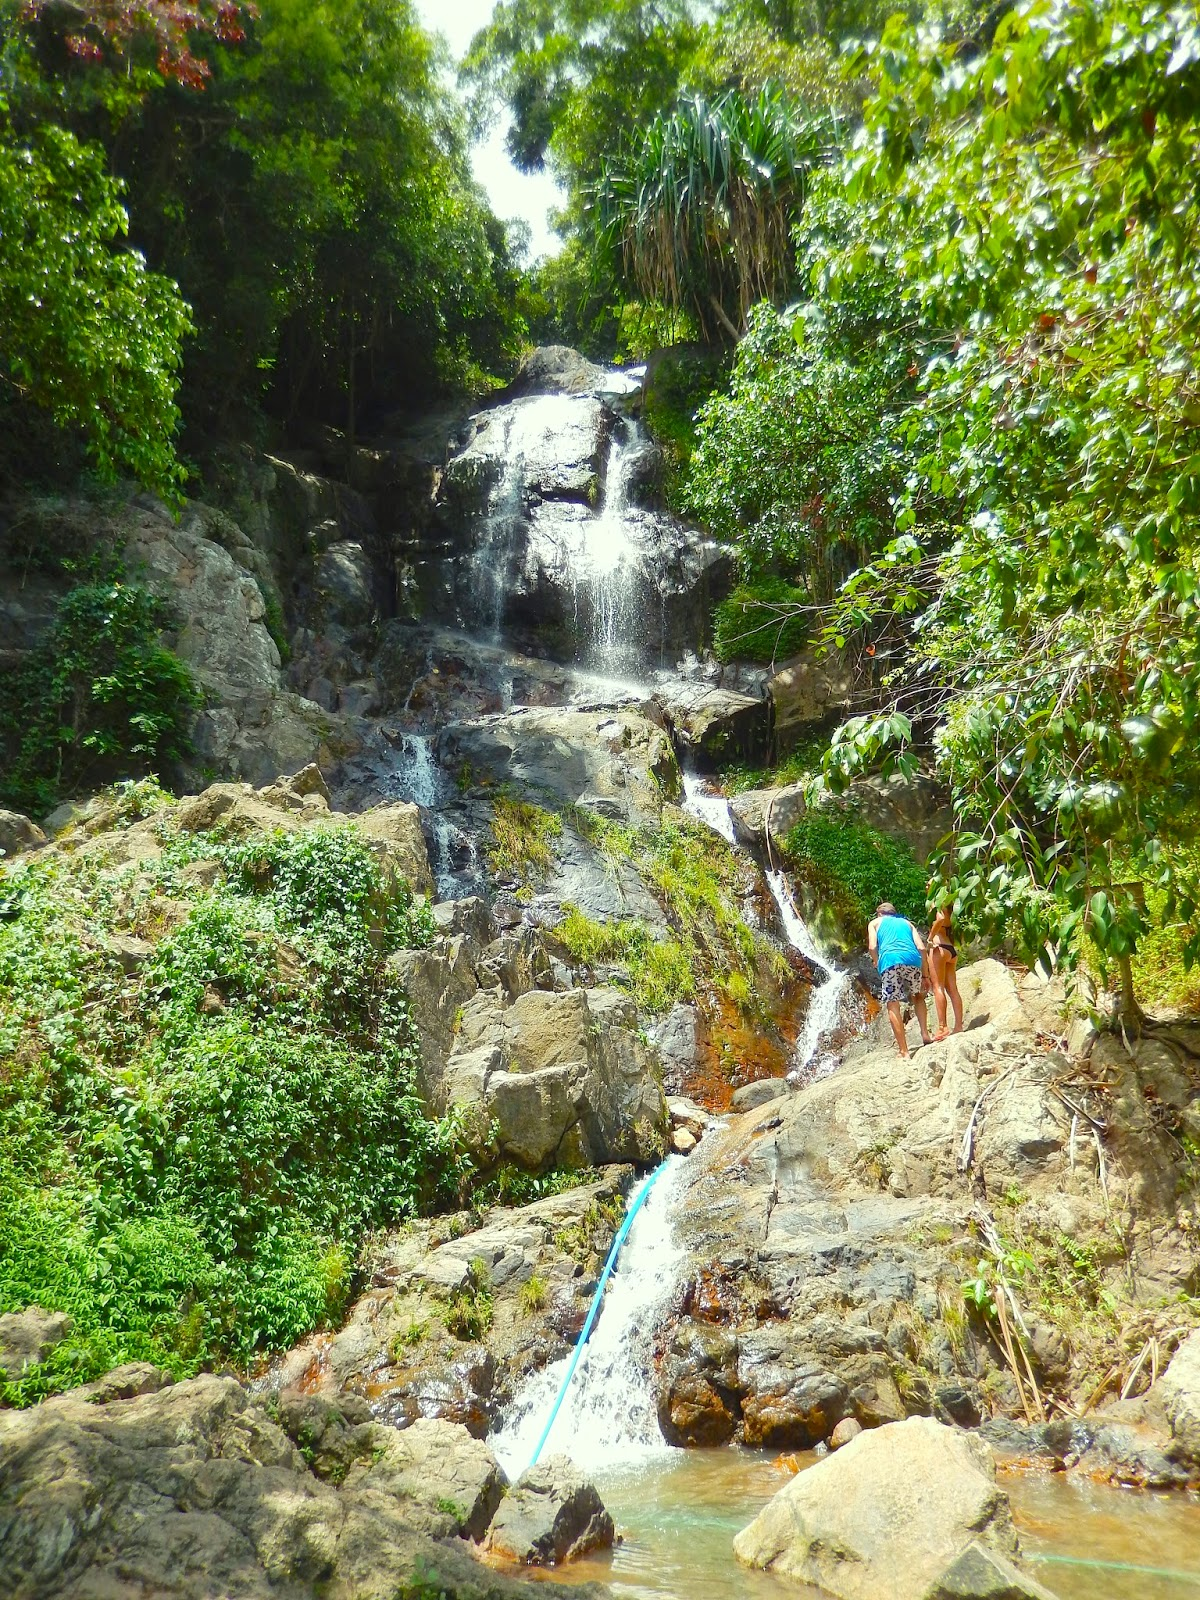 Nhatrang waterfalls